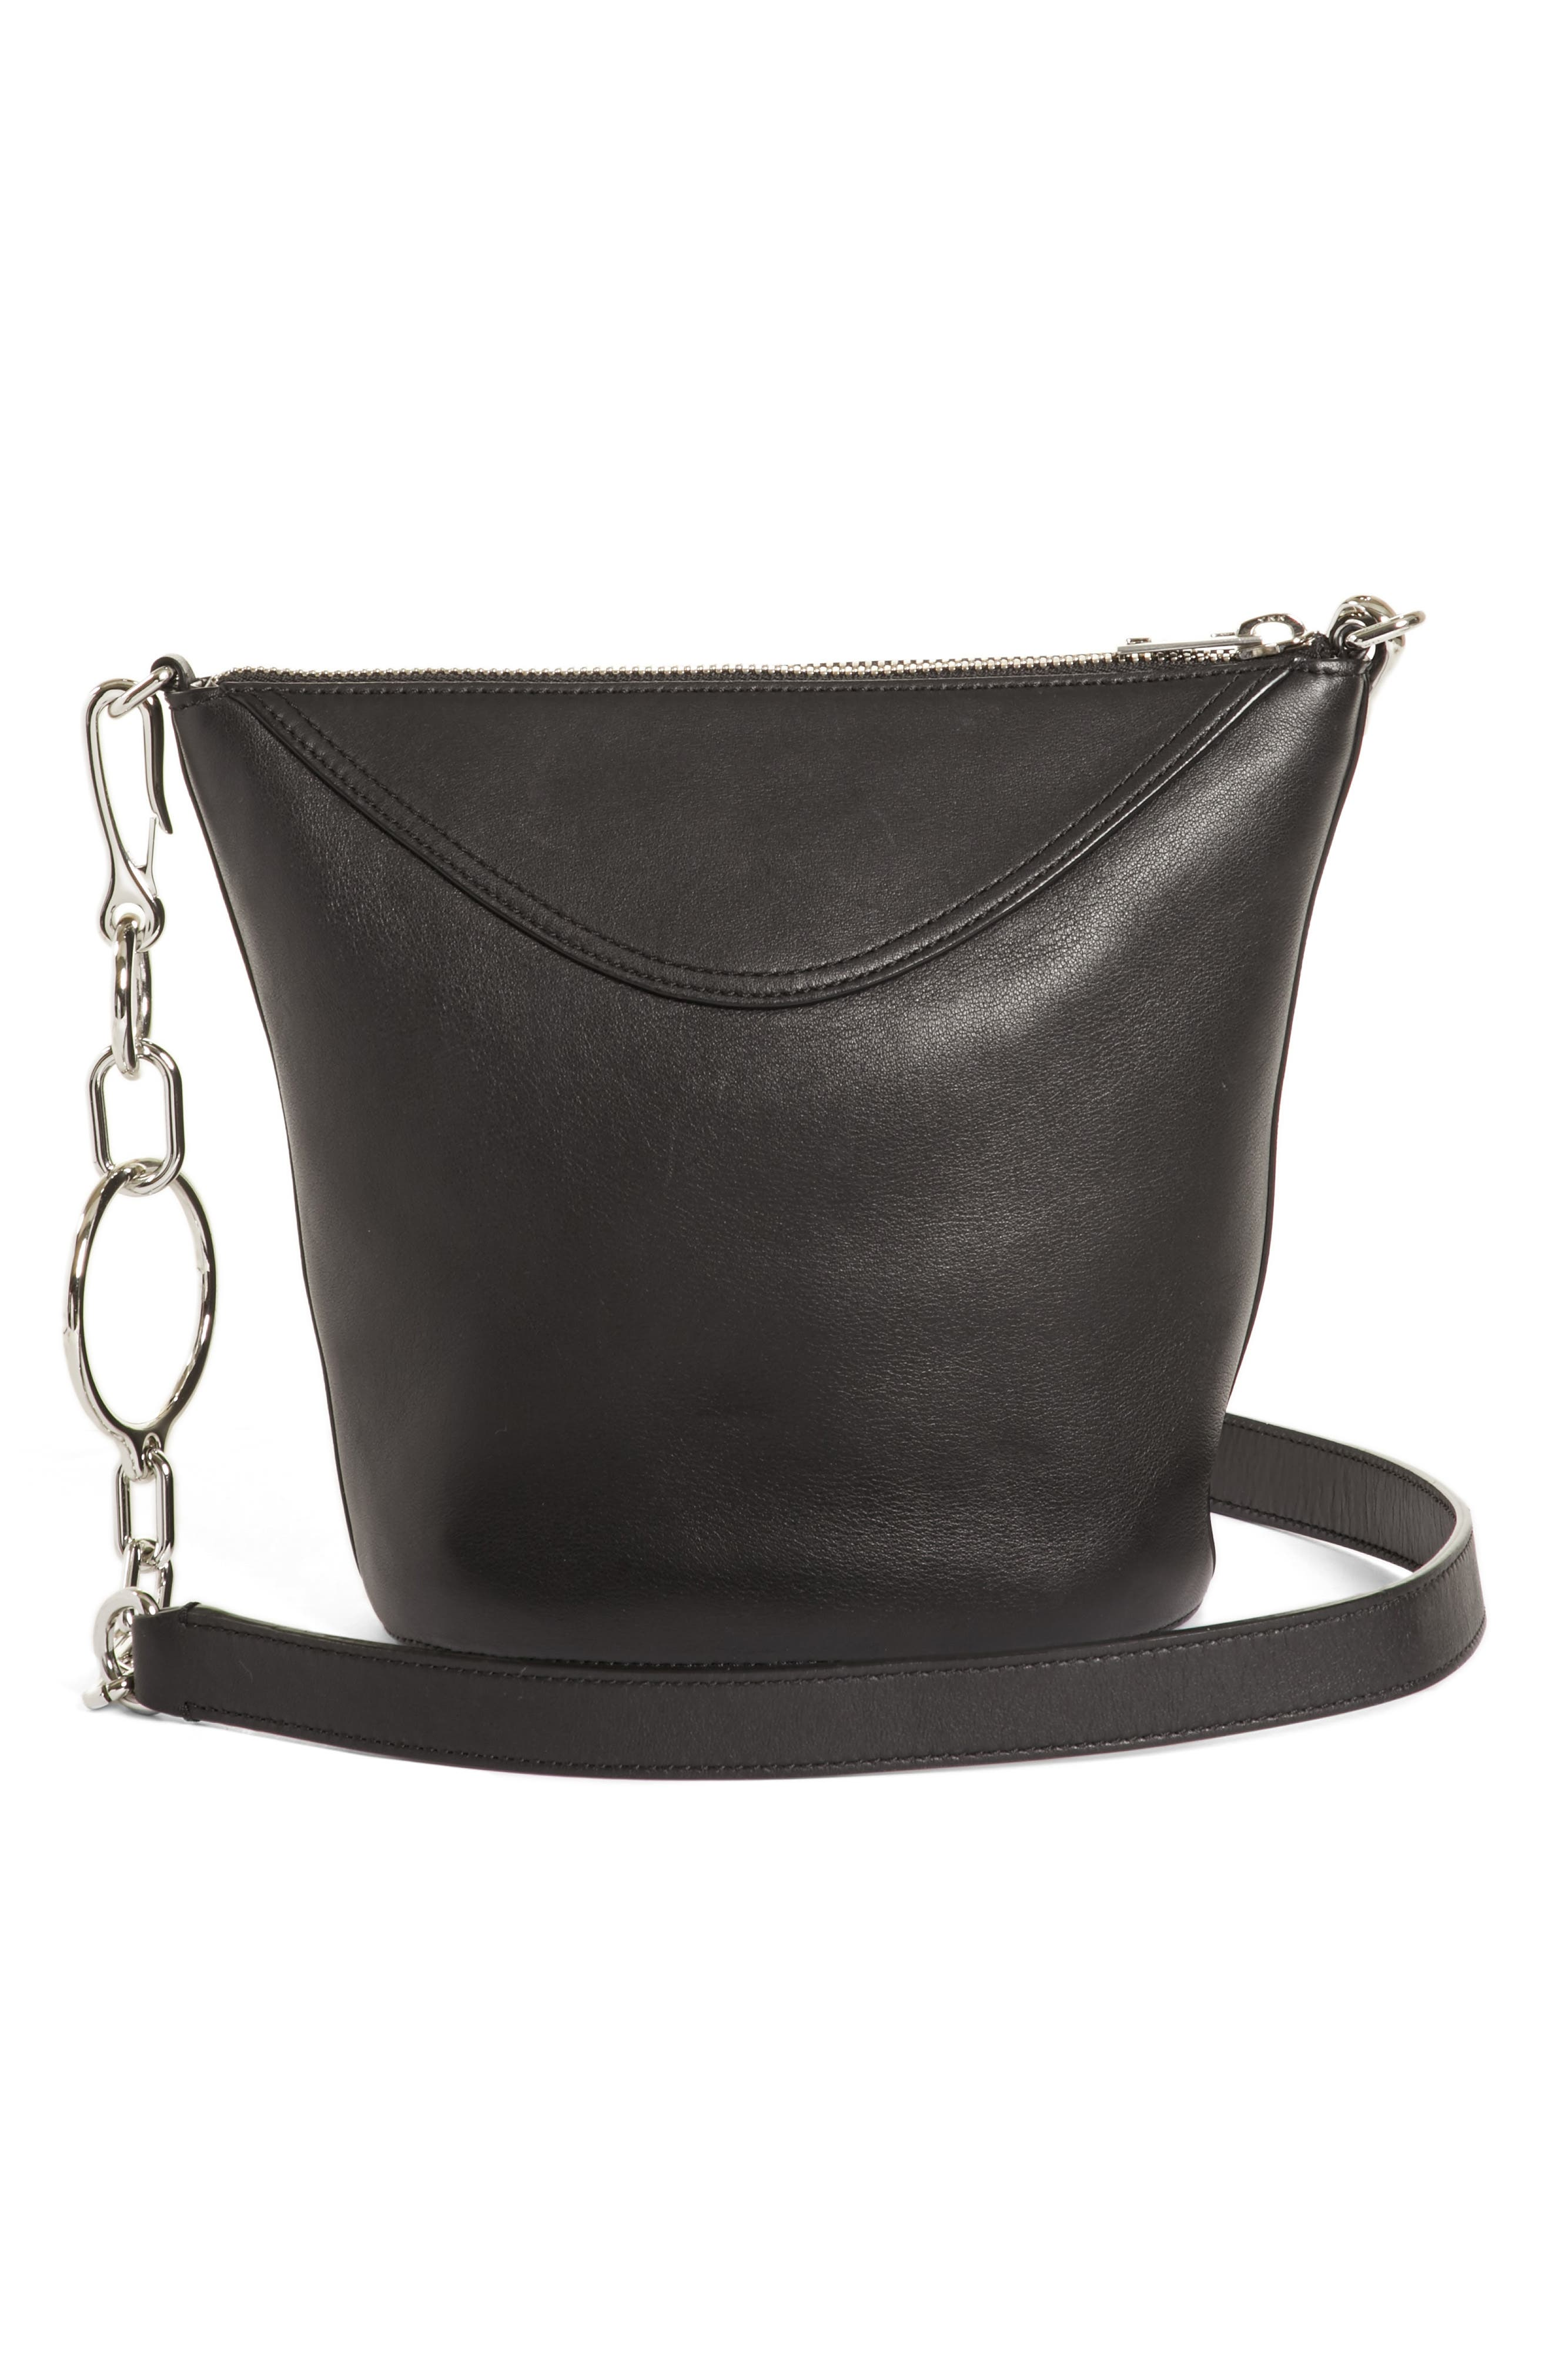 Ace Leather Bucket Bag,                             Alternate thumbnail 3, color,                             BLACK